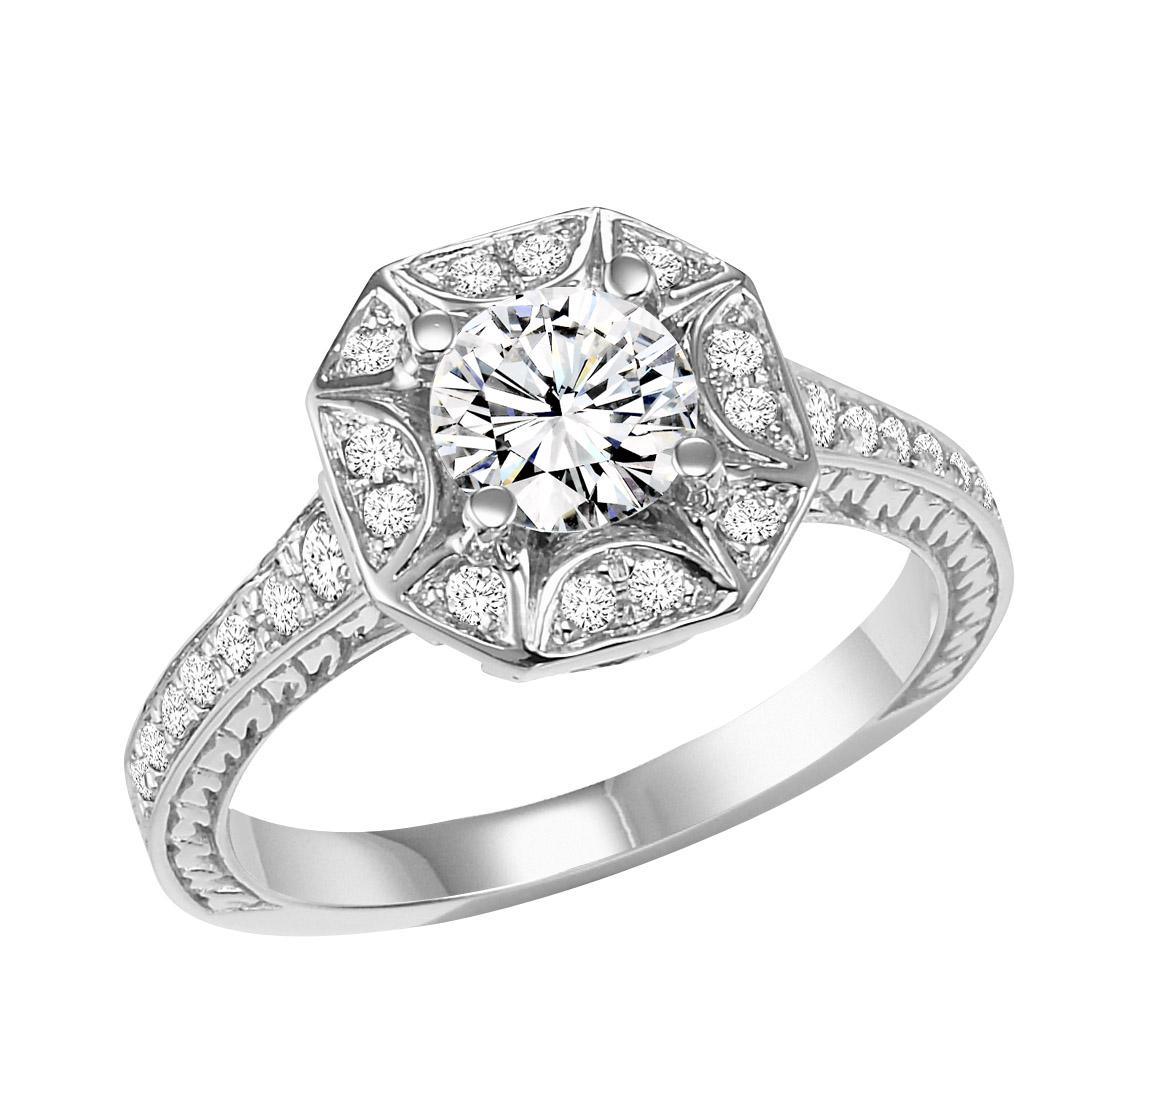 14K White Gold 1/3 ctw Diamond Ring/WB5805E